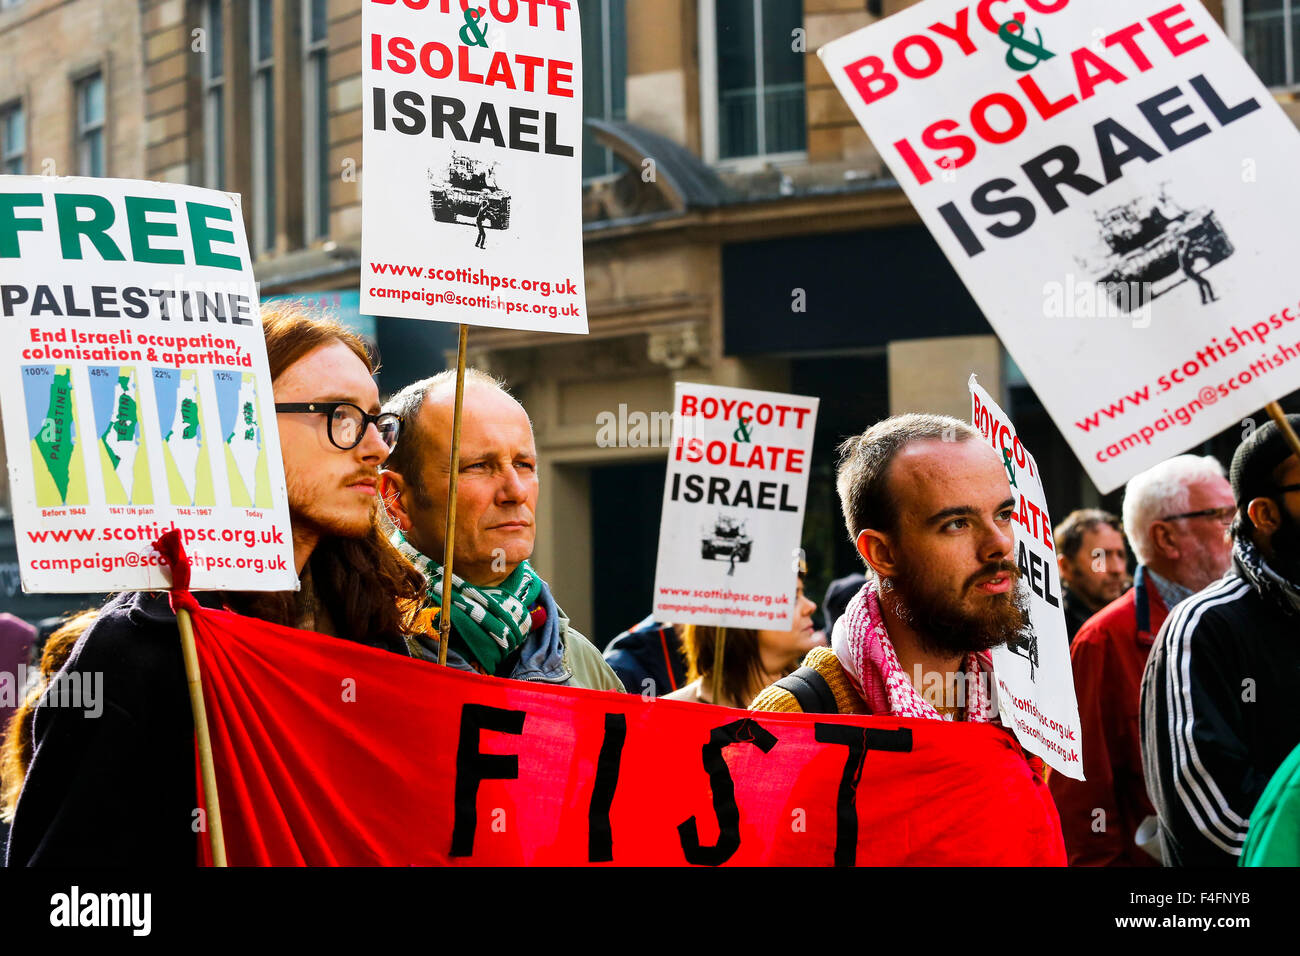 A number of members and supporters of the Scottish Palestine Solidarity Campaign attended a rally in Glasgow city - Stock Image